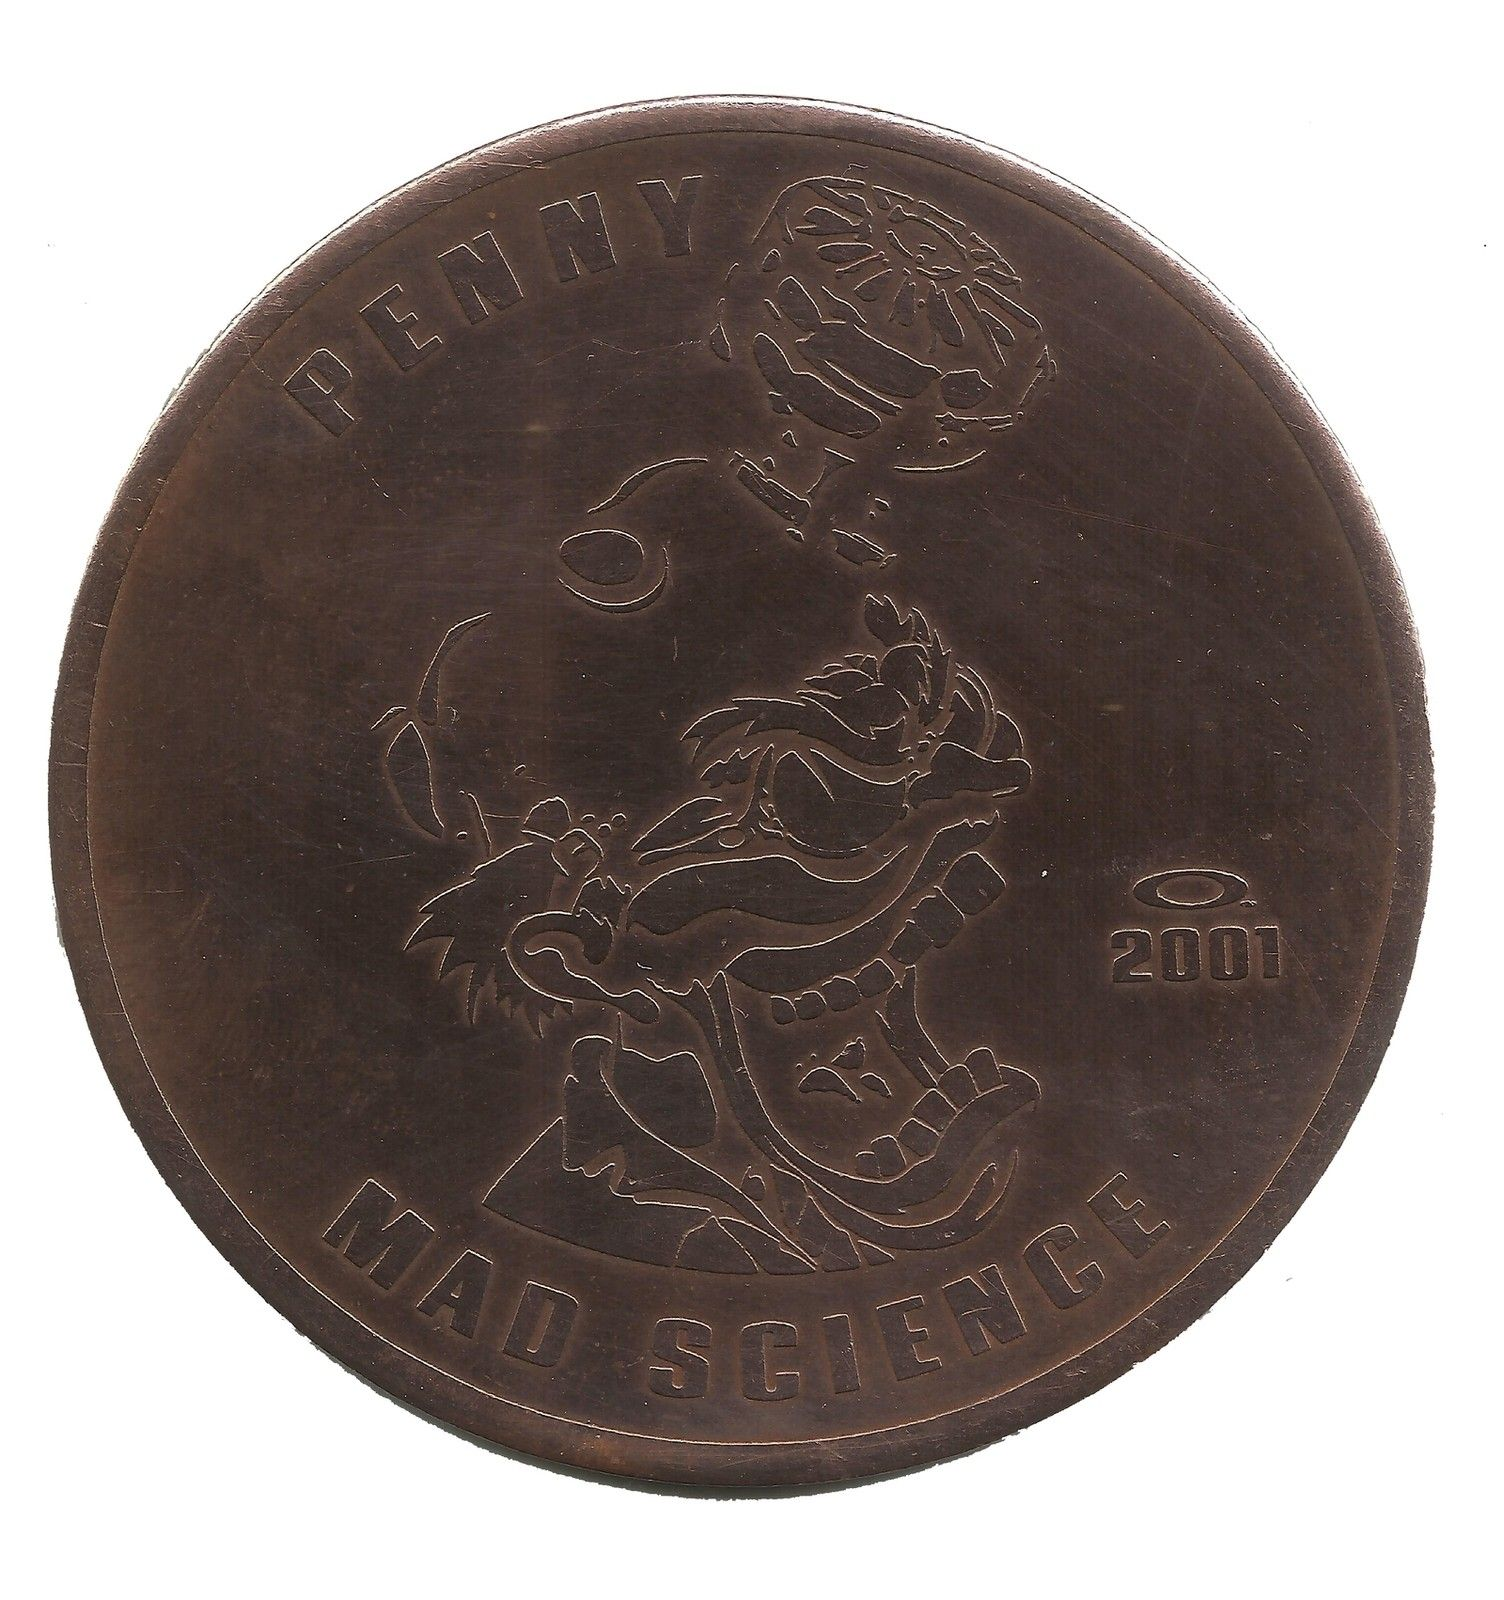 Oakley Penny Copper Coin Specimen - MAD SCIENCE ERA 2001 - Mad Science.jpg